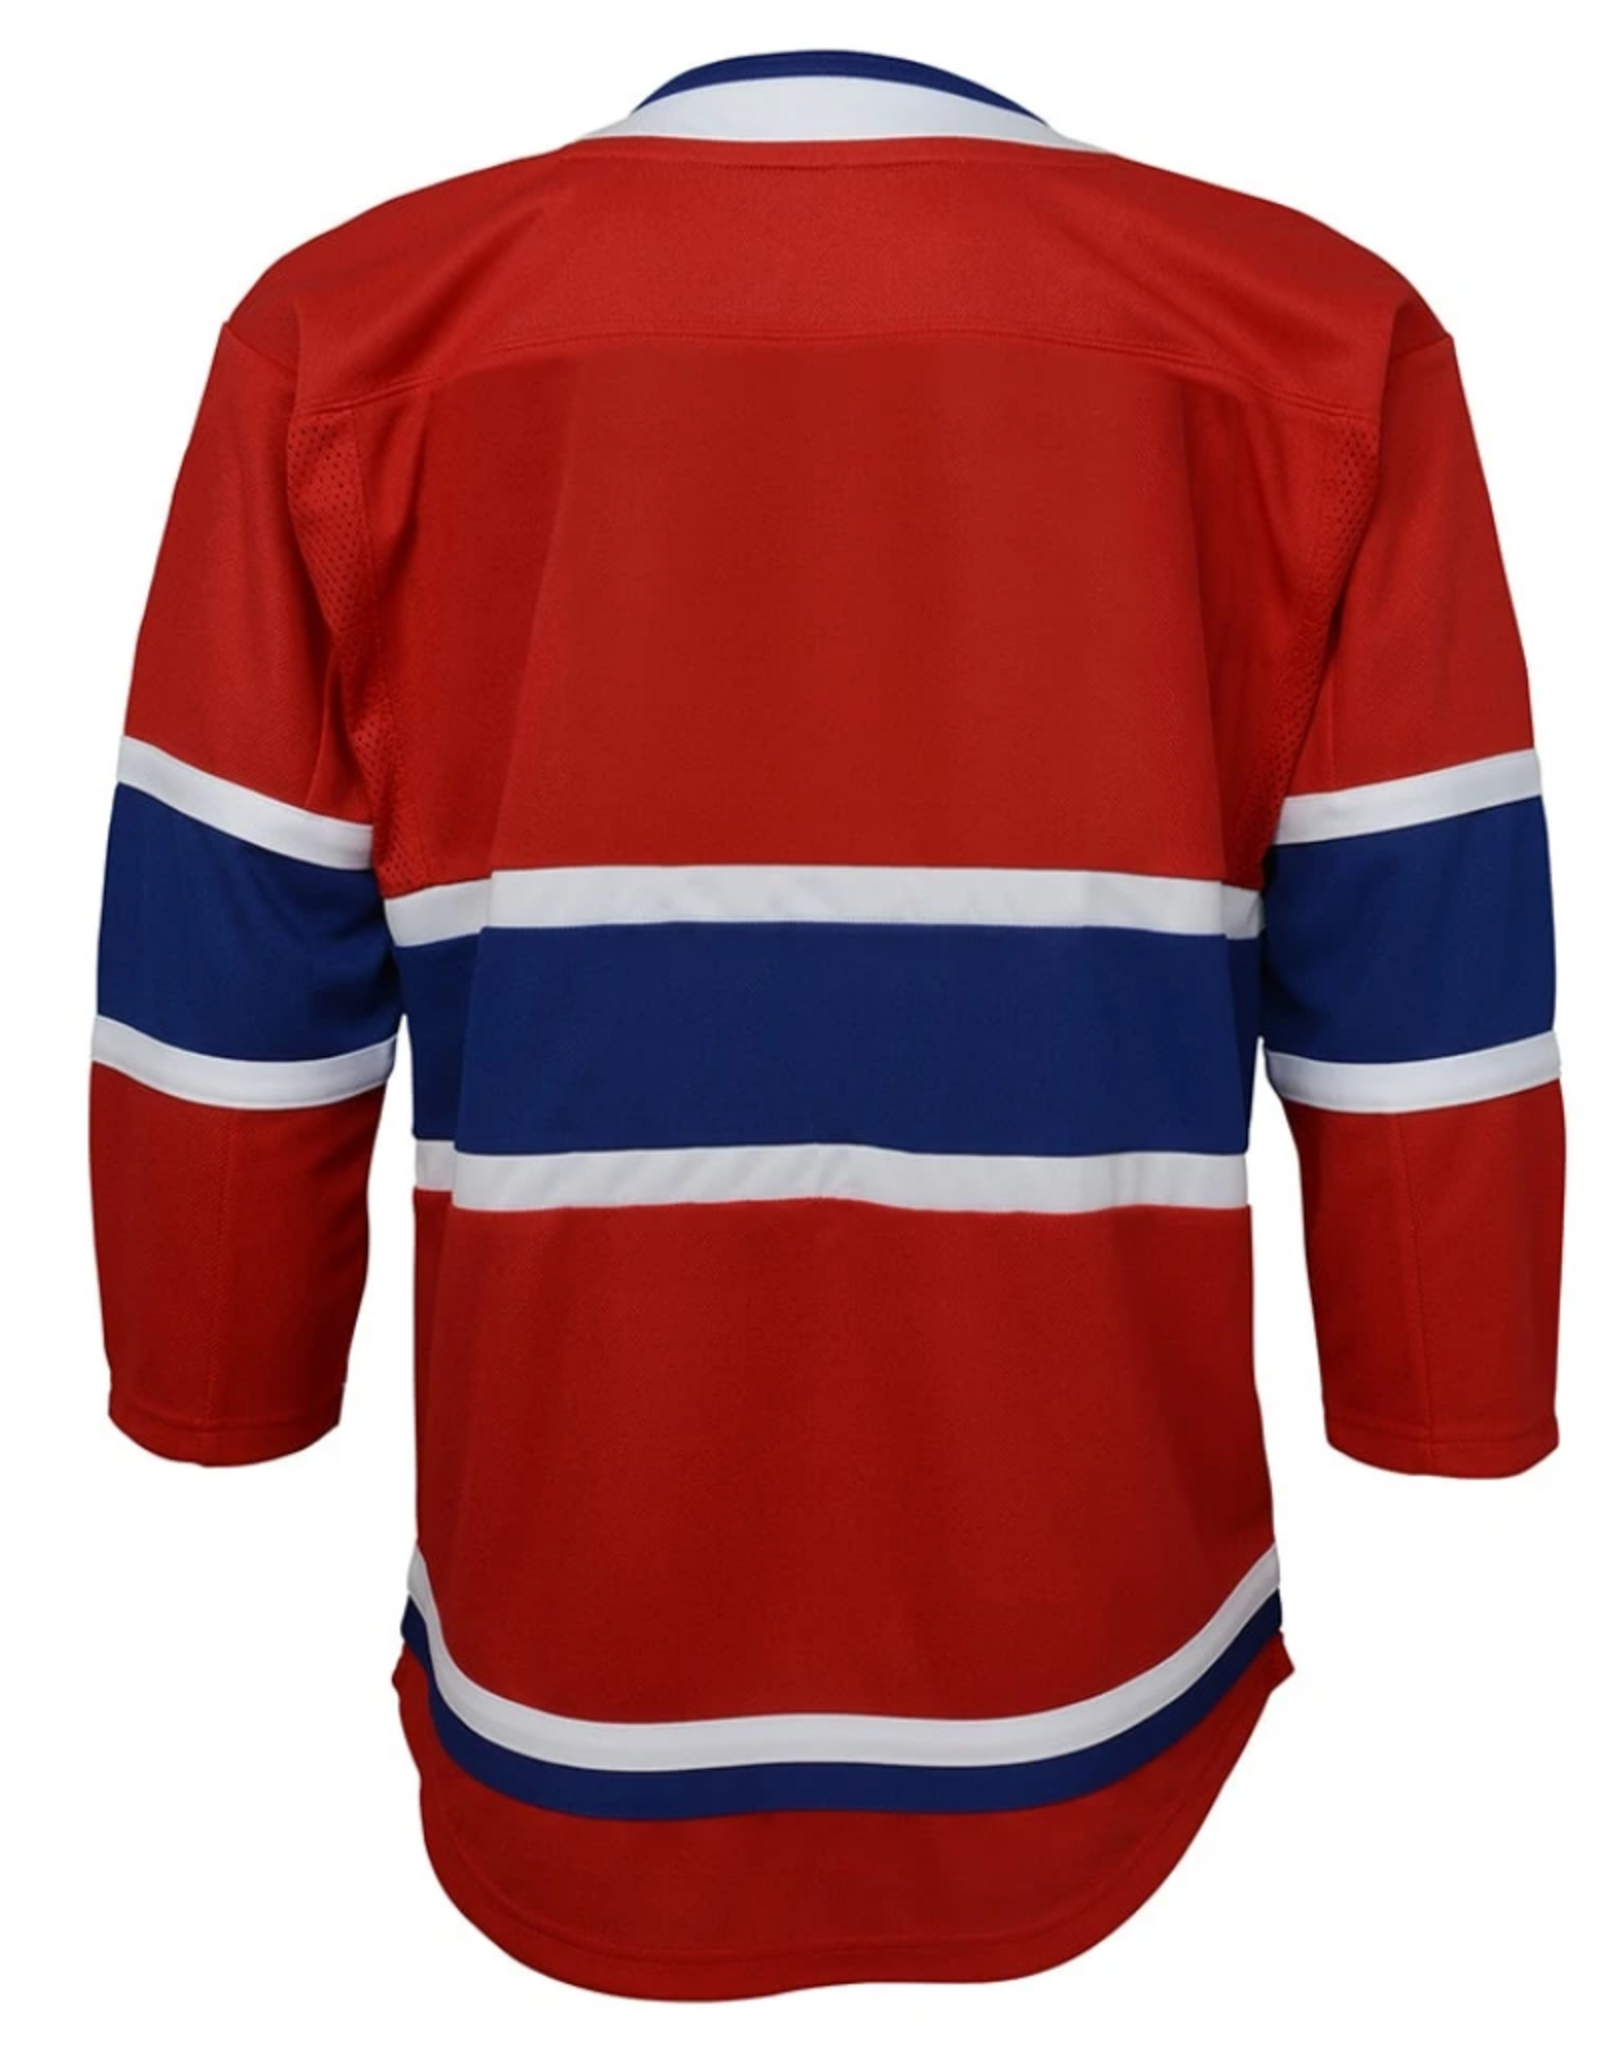 NHL Youth Premier Home Jersey Montreal Canadiens Red